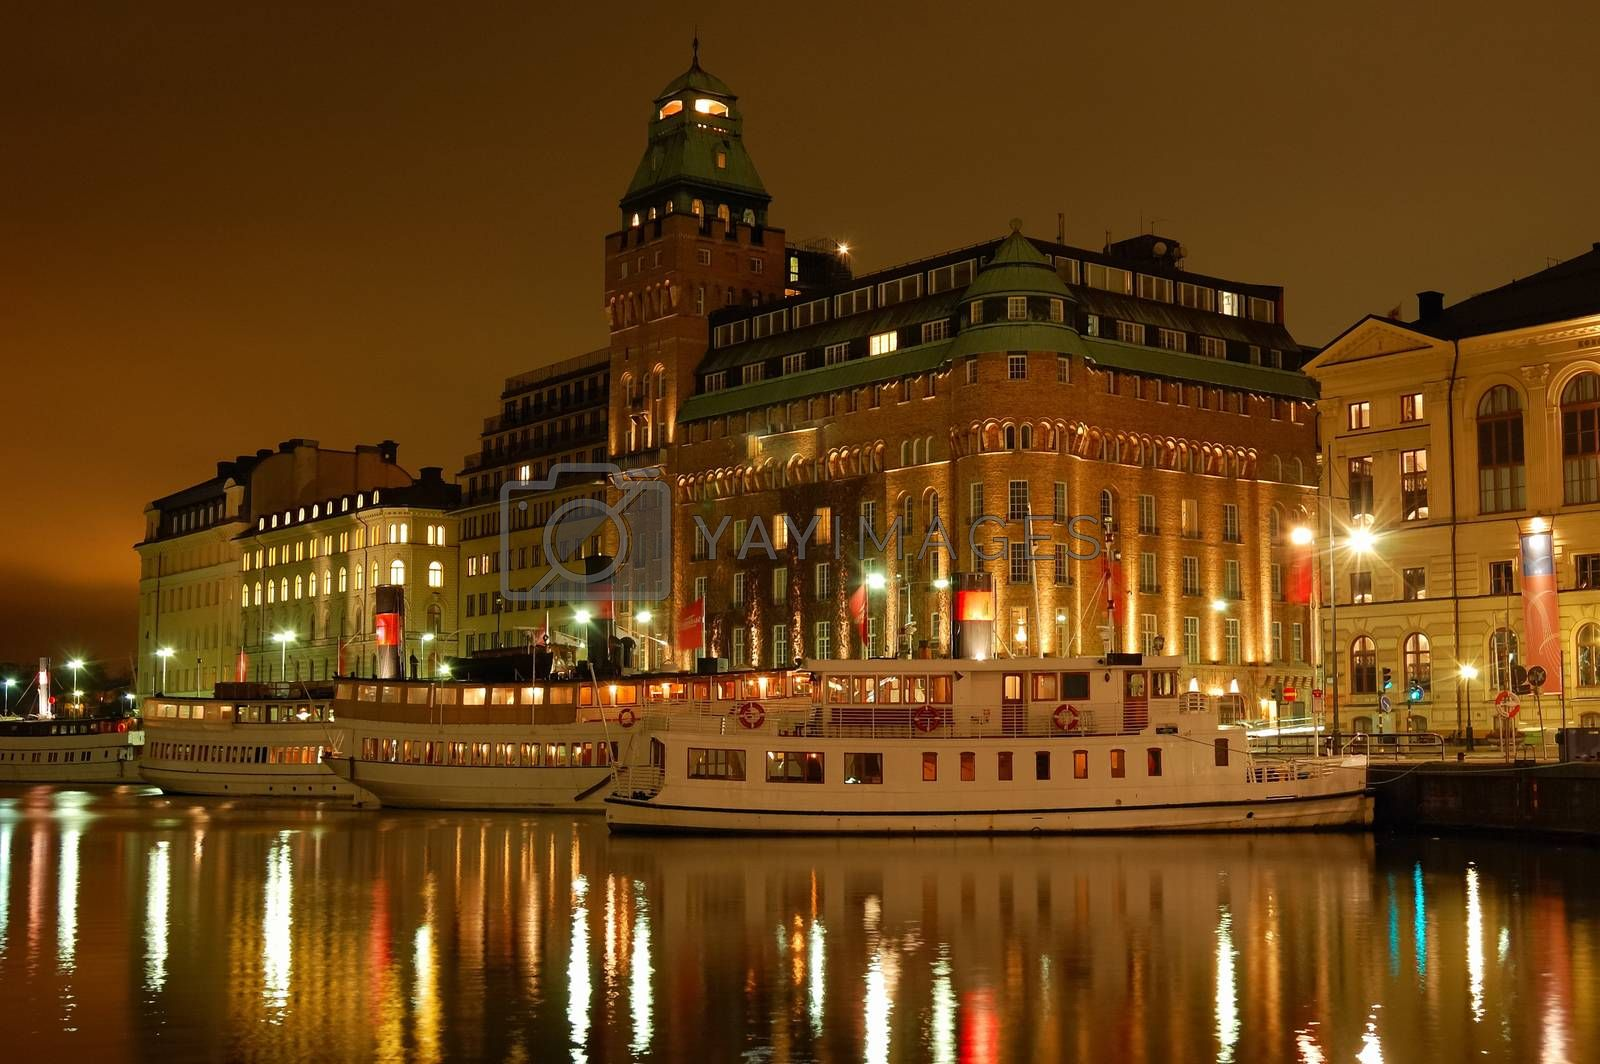 Stockholm embankment with boats.